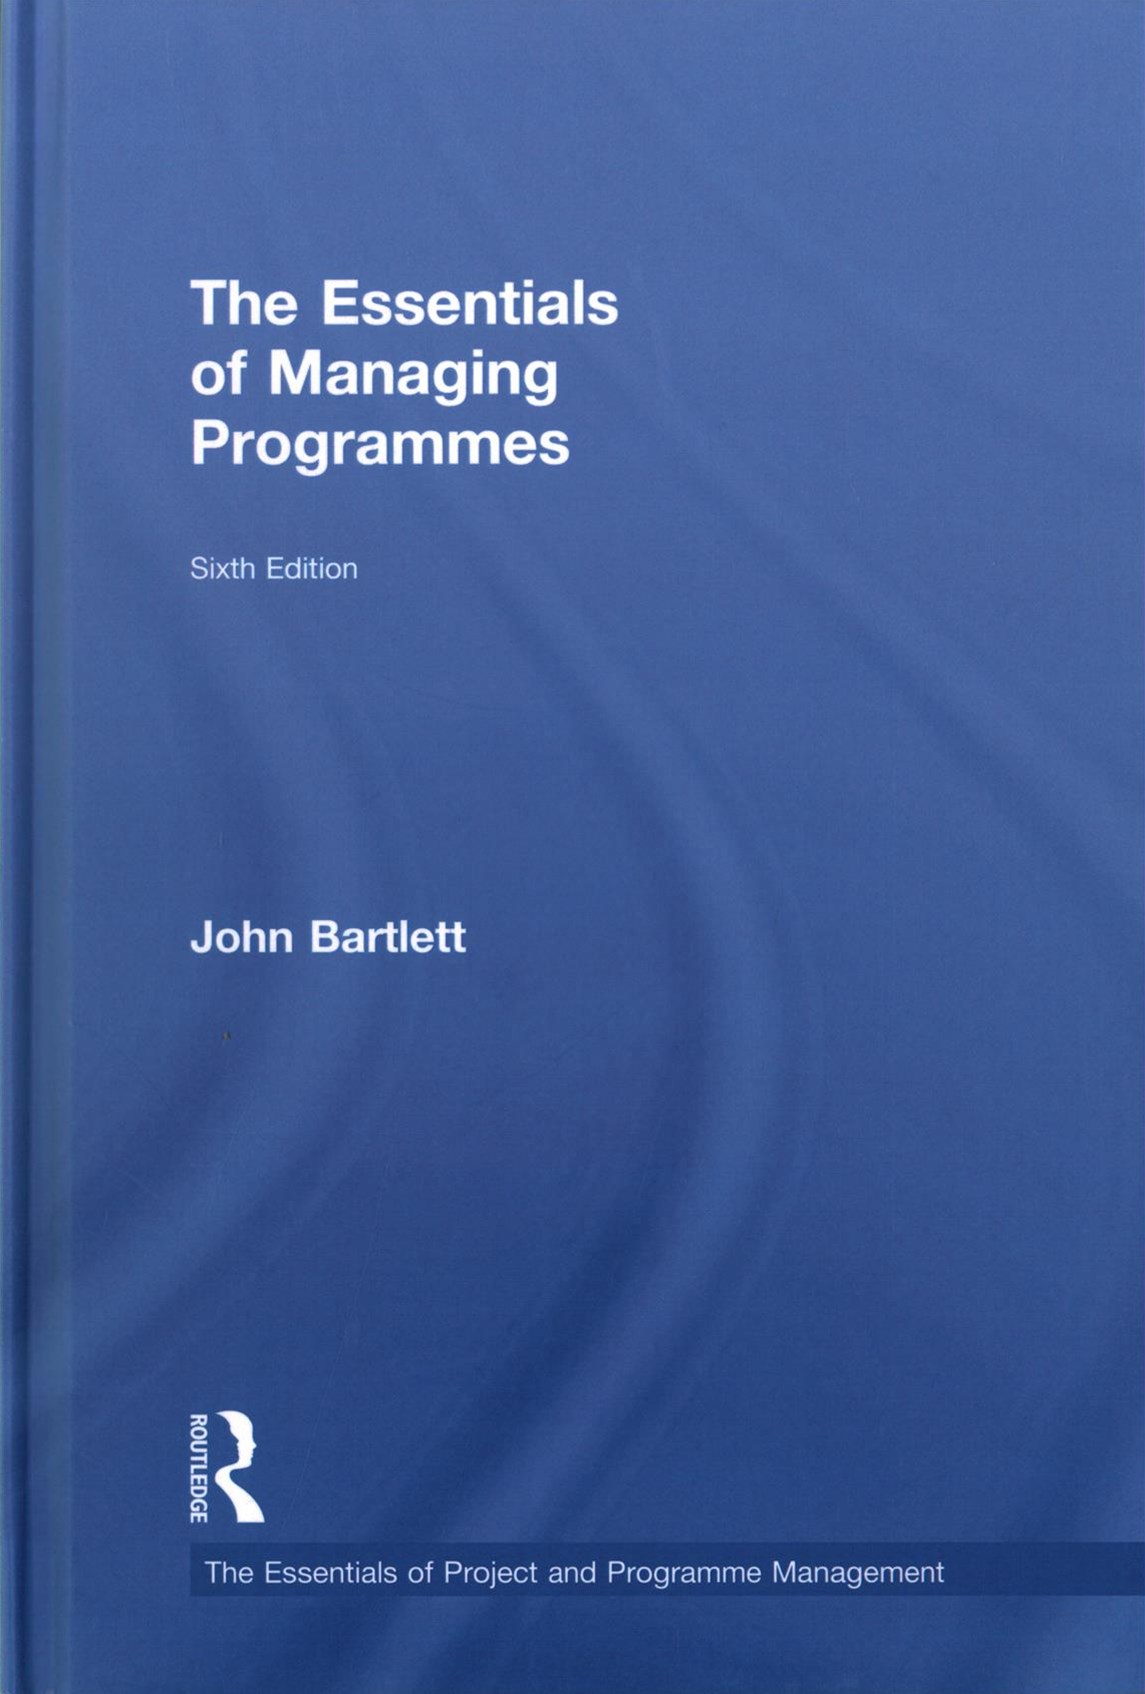 Essentials of Managing Programmes